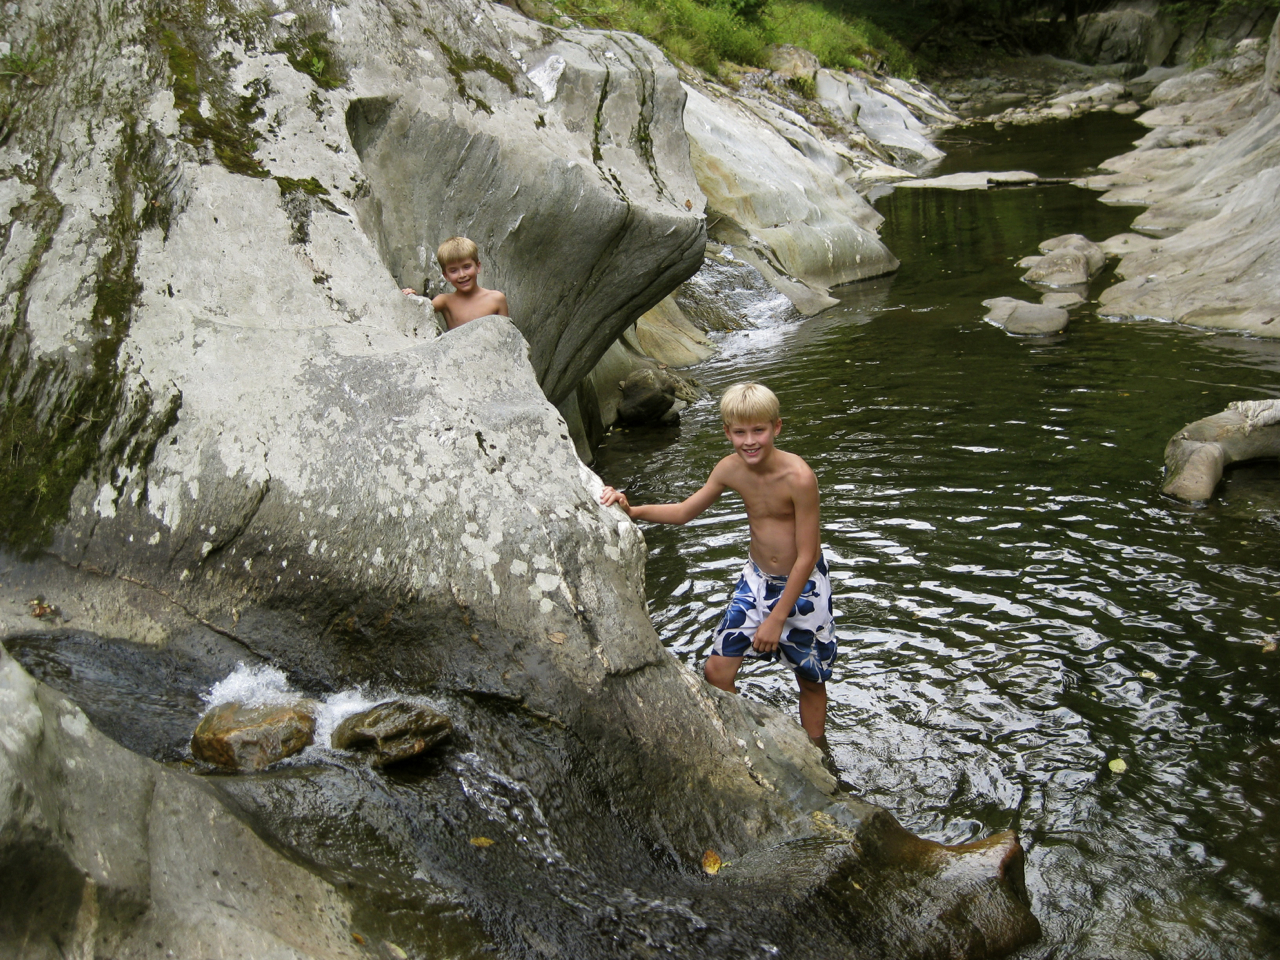 Swimming in the Mad River Valley: A Summer Pleasure